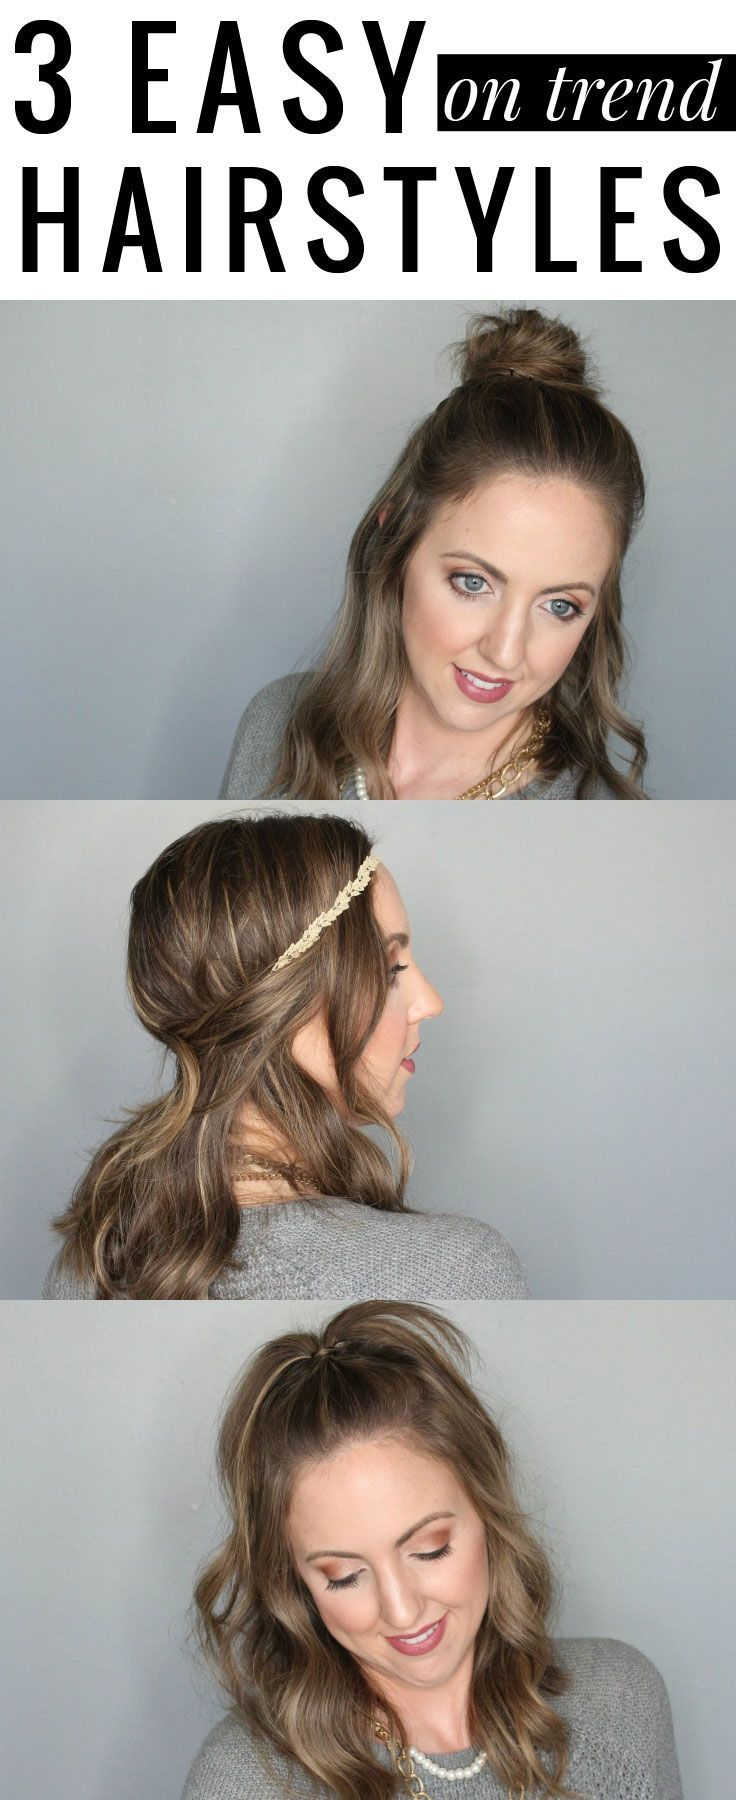 3 Easy (on trend!) Hairstyles – looking put together in a pinch is easier than you thought! Headband tuck, half ponytail, and fun bun are all quick and easy!